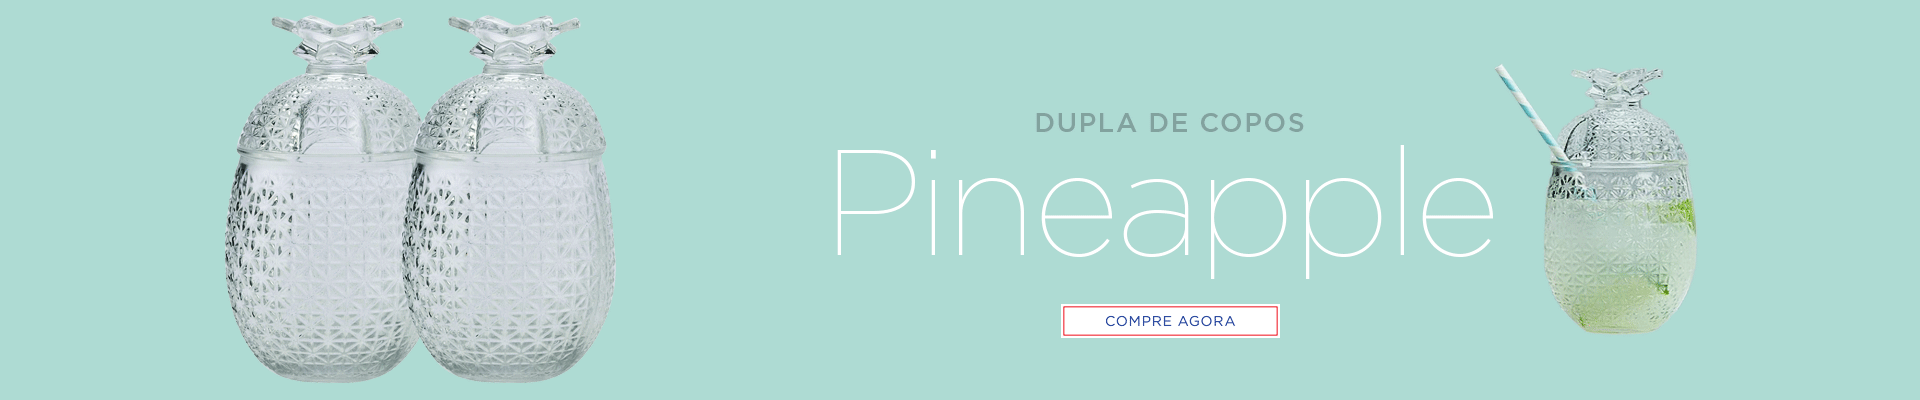 fullbanner-pineapple